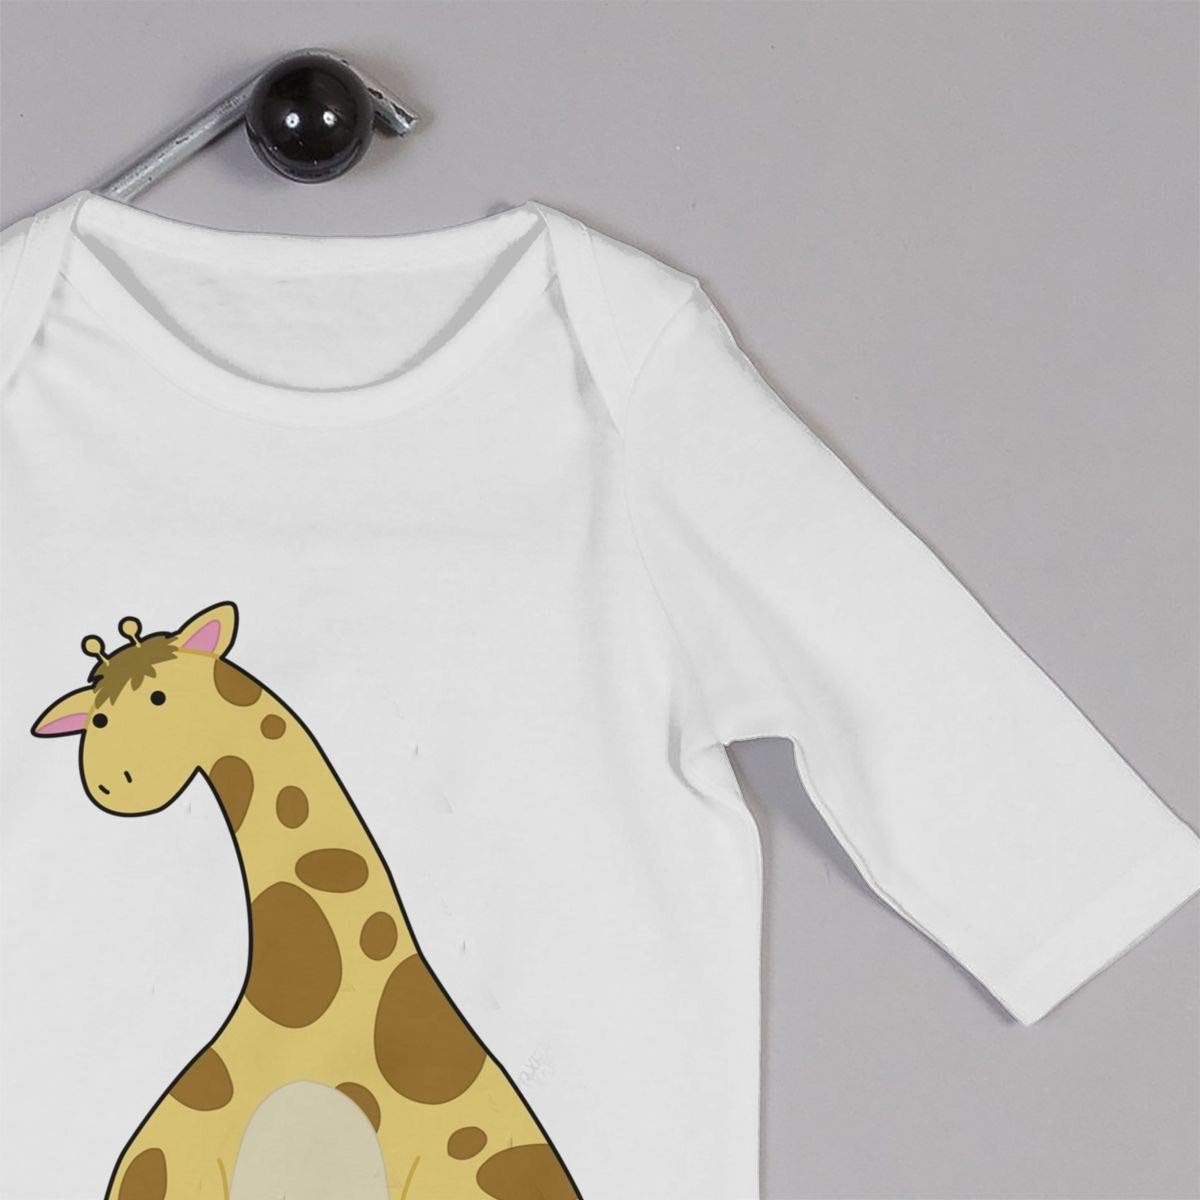 KAYERDELLE The Giraffe Long-Sleeve Unisex Baby Outfit for 6-24 Months Infant